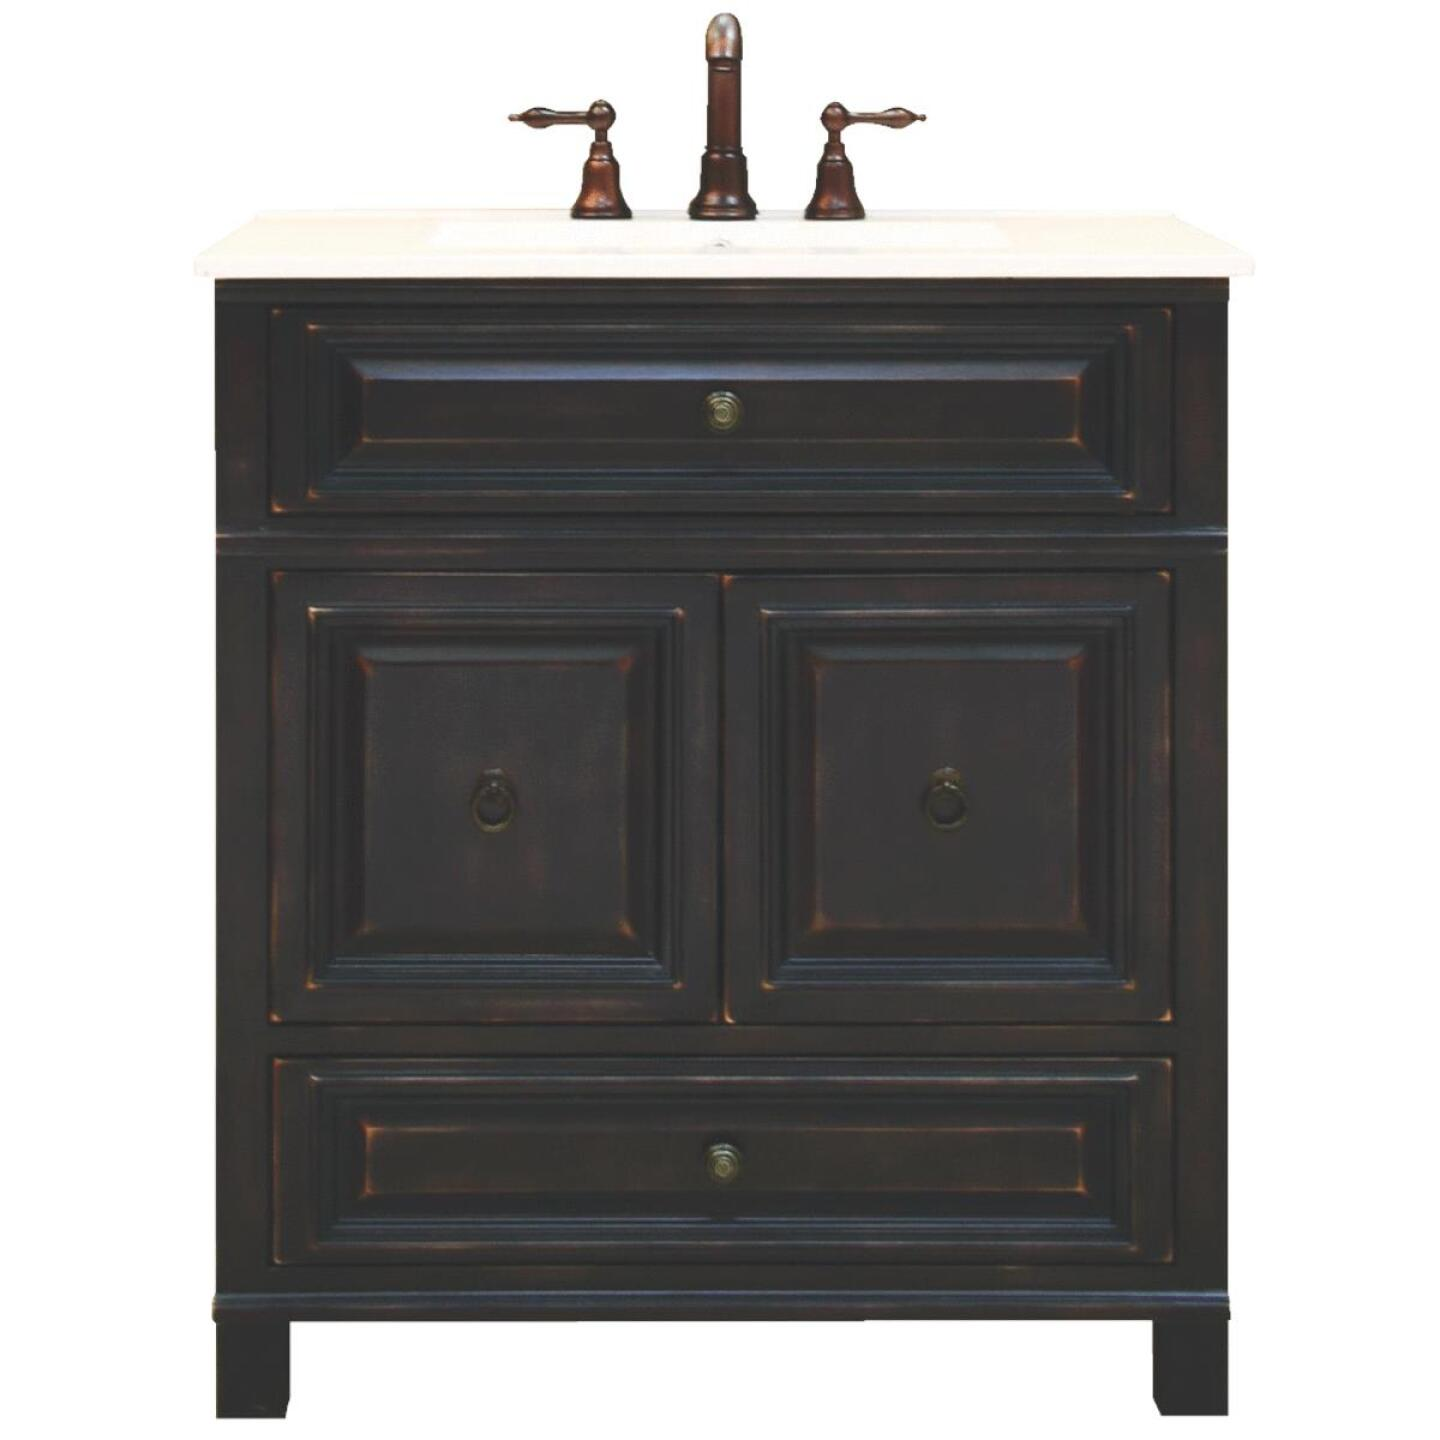 Sunny Wood Barton Hill Black Onyx 30 In. W x 34 In. H x 21 In. D Vanity Base, 2 Door/1 Drawer Image 84